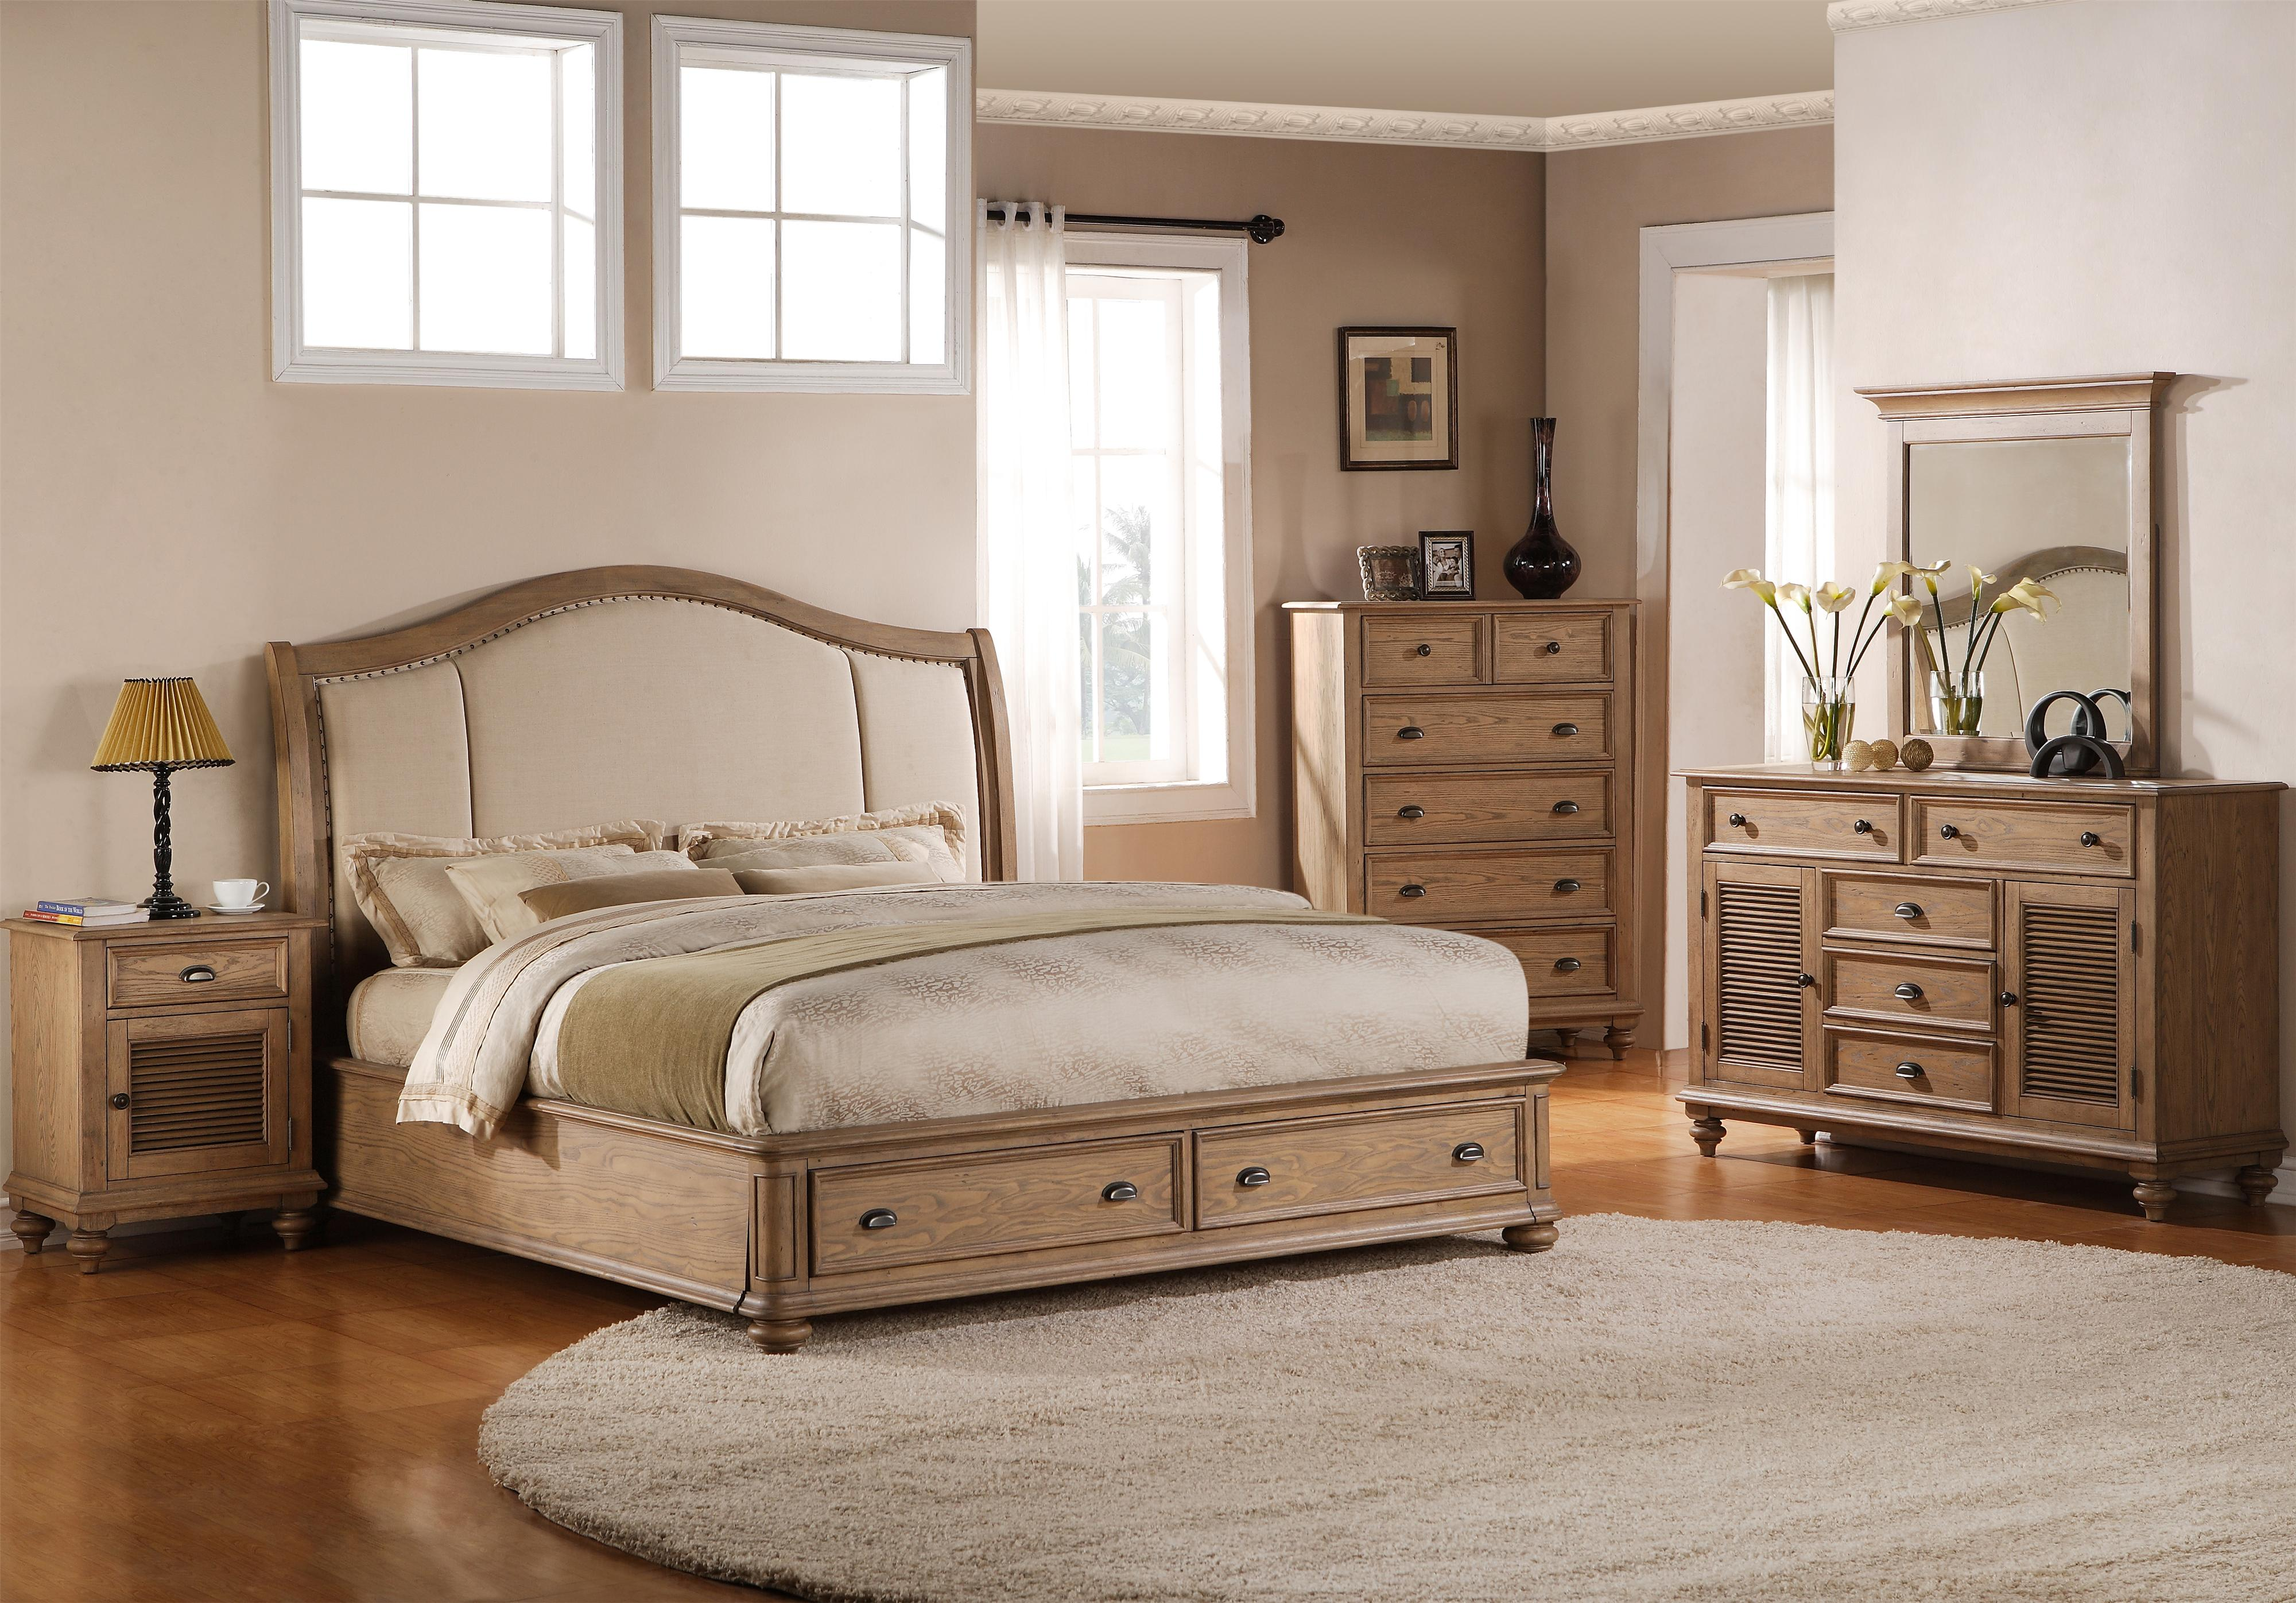 Riverside Furniture Coventry Full/Queen Bedroom Group - Item Number: 32400 F Q Bedroom Group 12